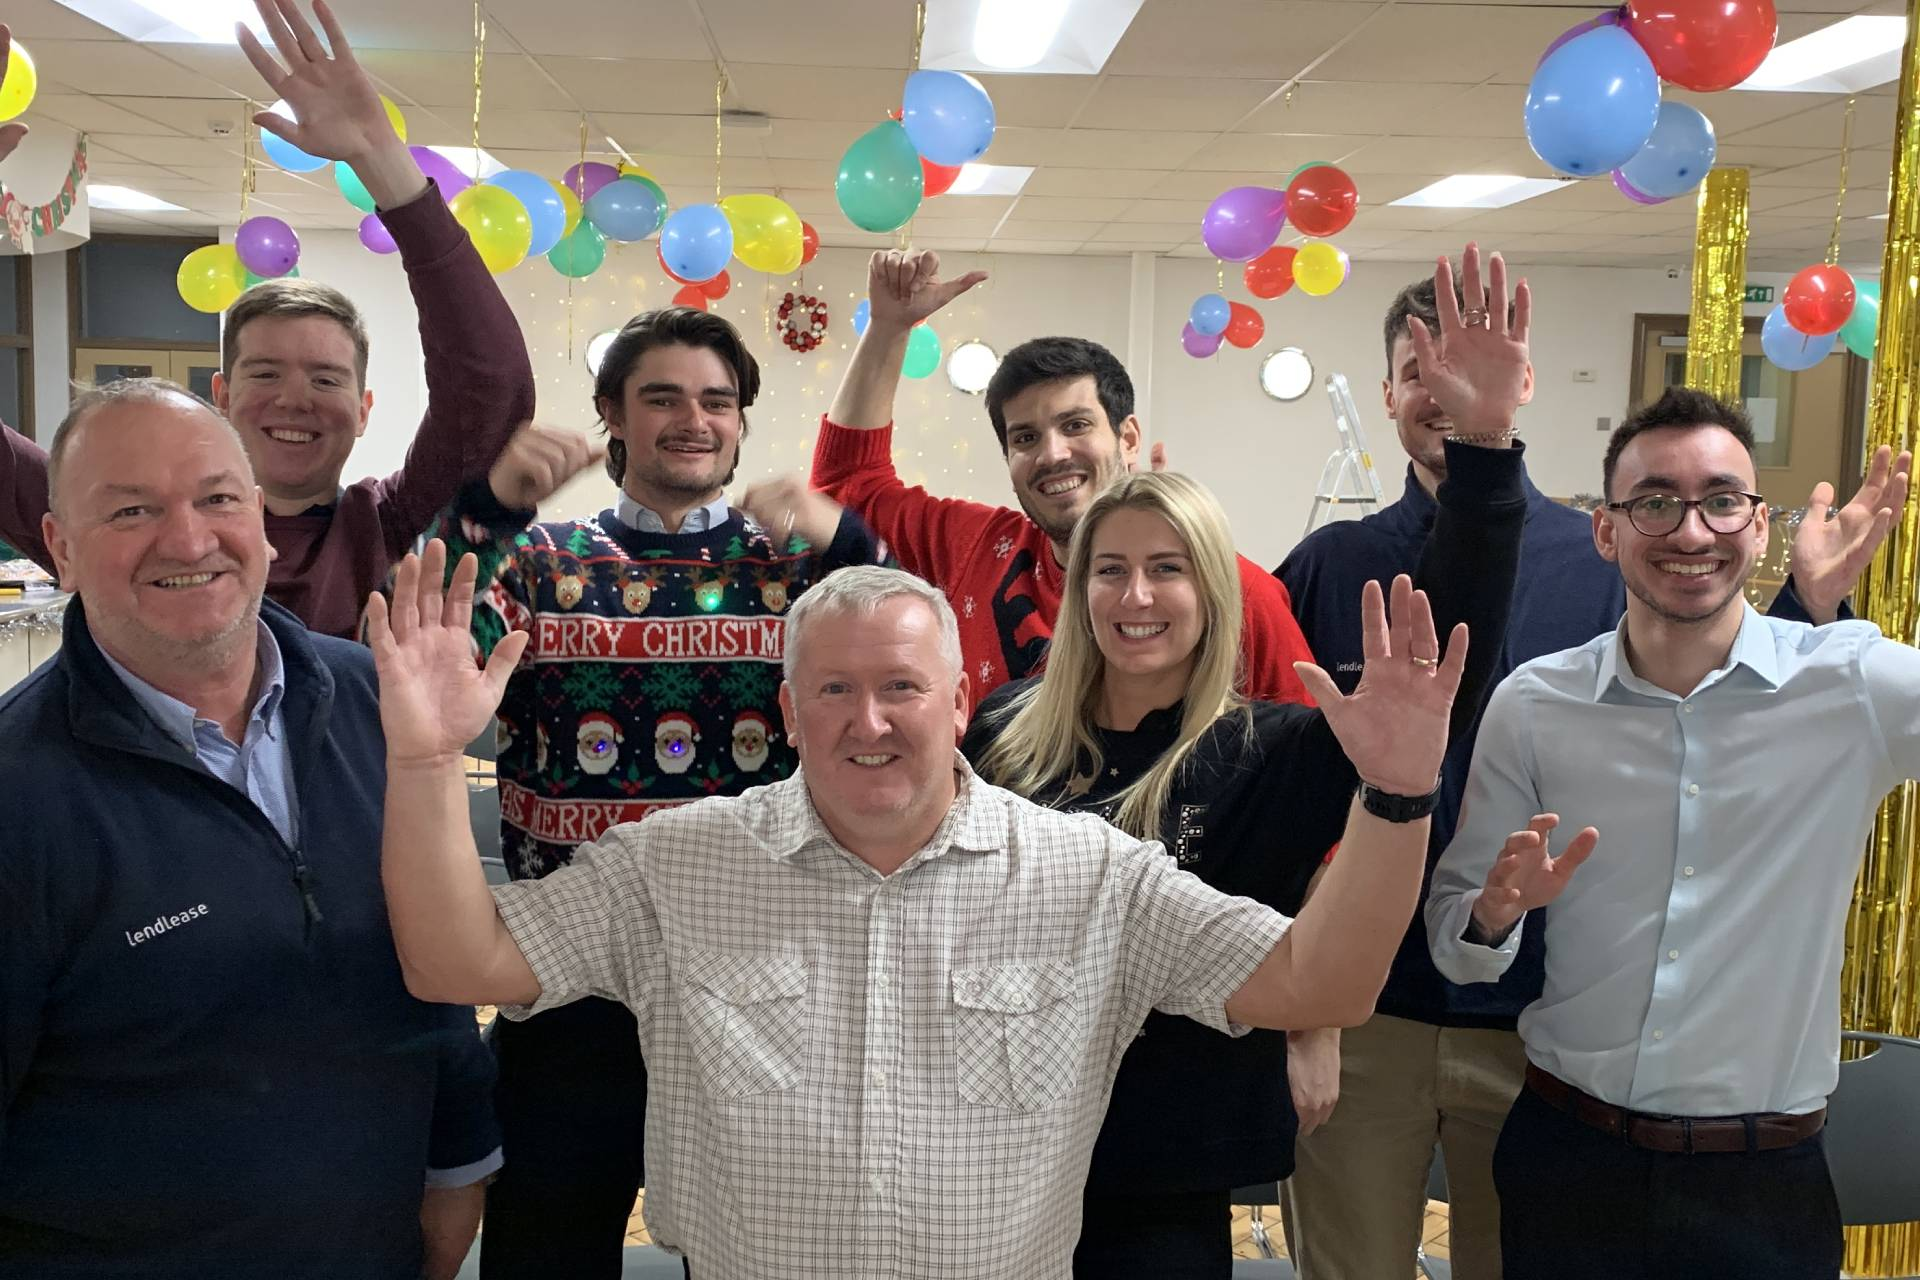 A group of people in an office decorated with ballons and Christmas decorations raise that hands and smile